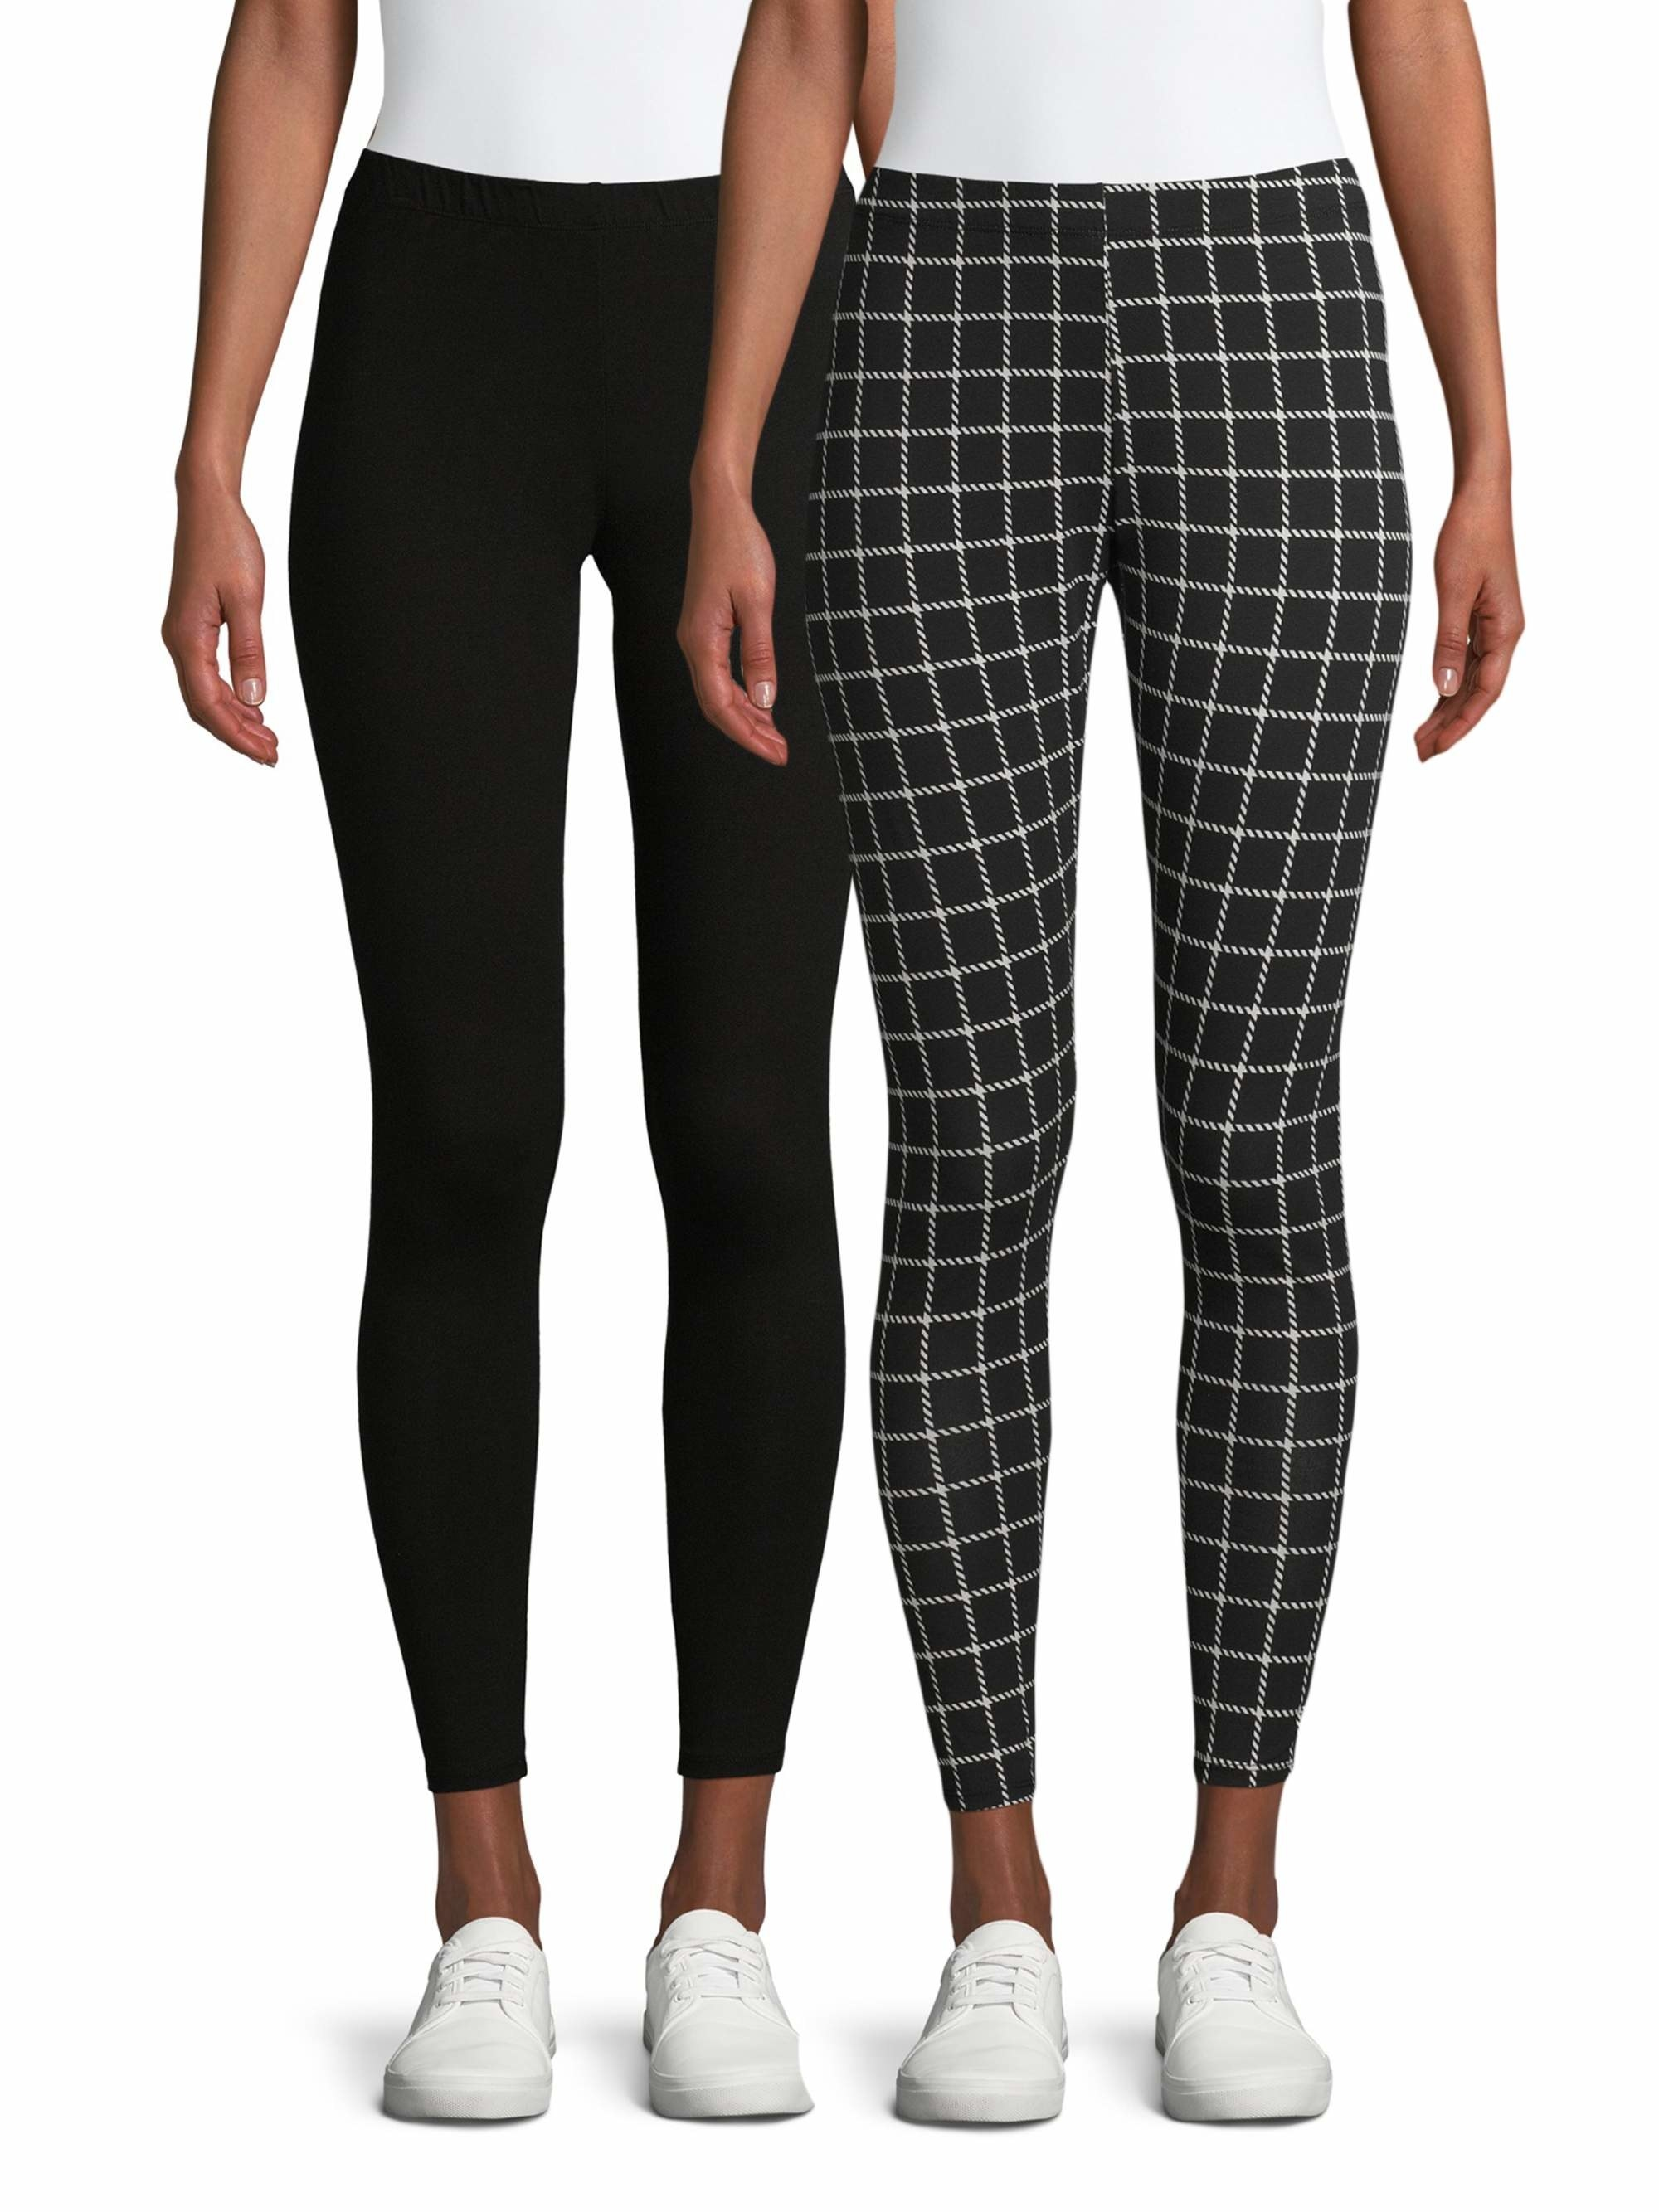 Model wearing black leggings and model wearing black and whit gingham leggings